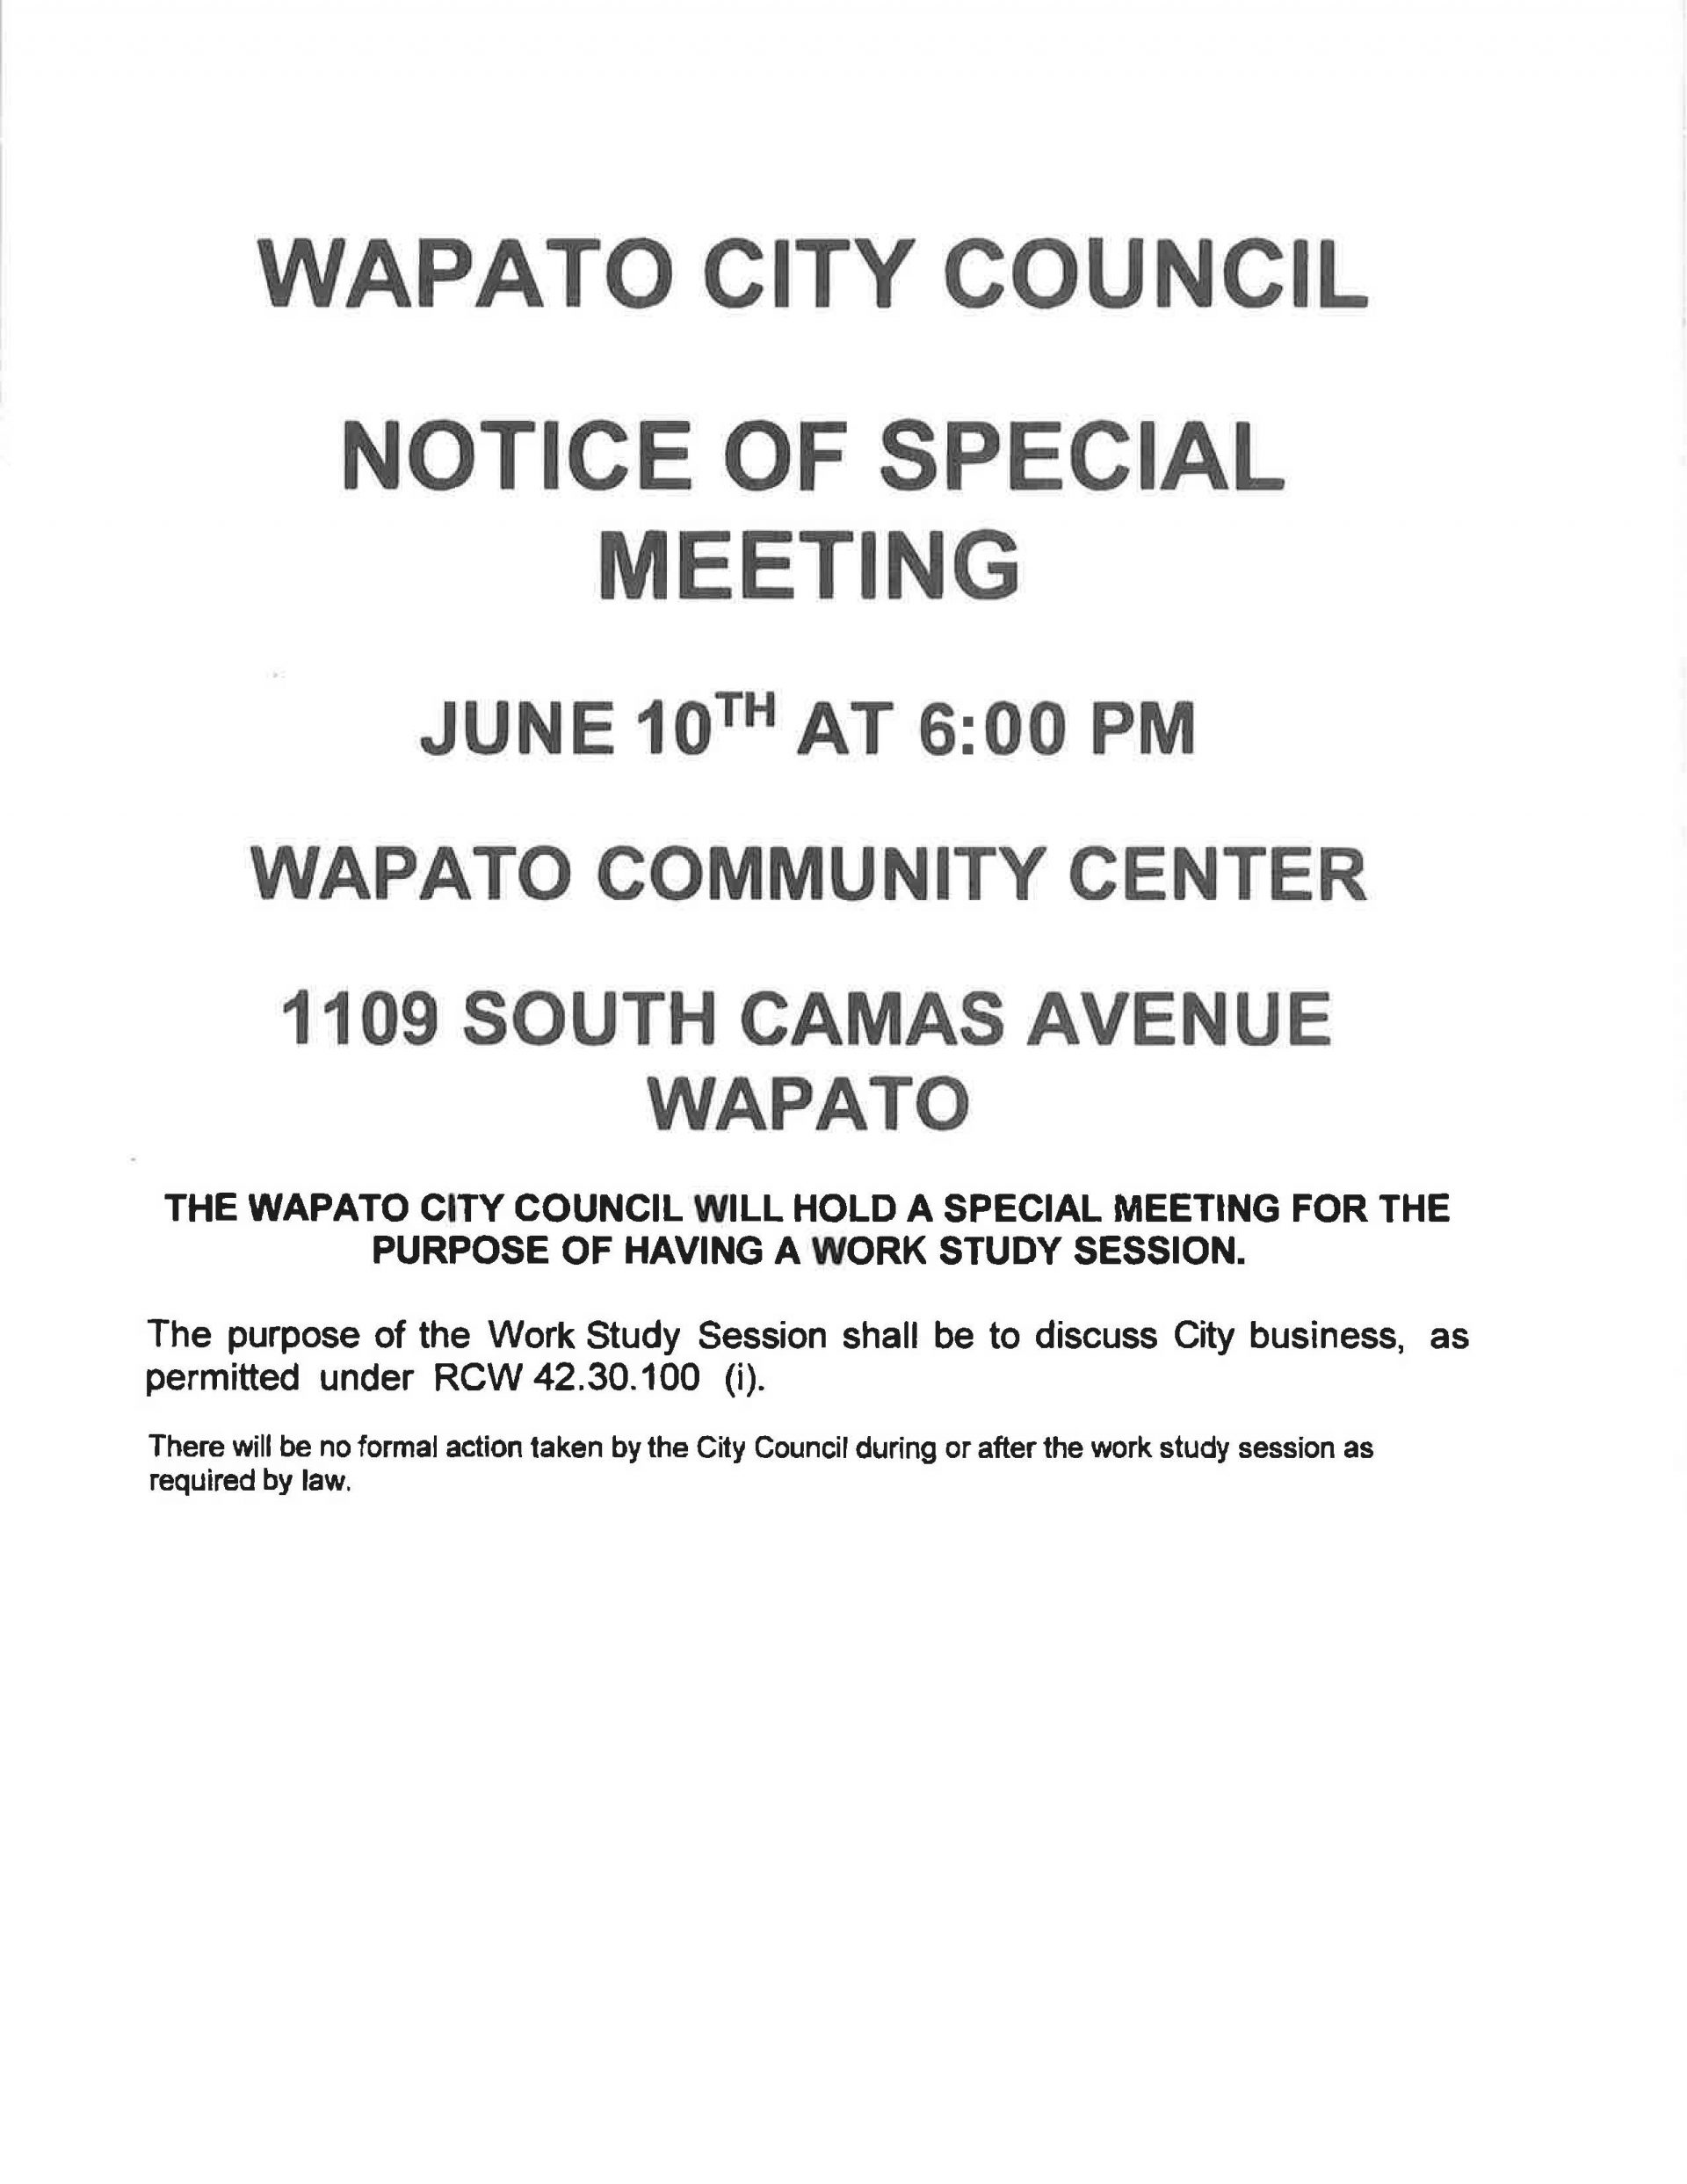 NOTICE OF SPECIAL MEETING JUNE 10TH @ 6:00 PM